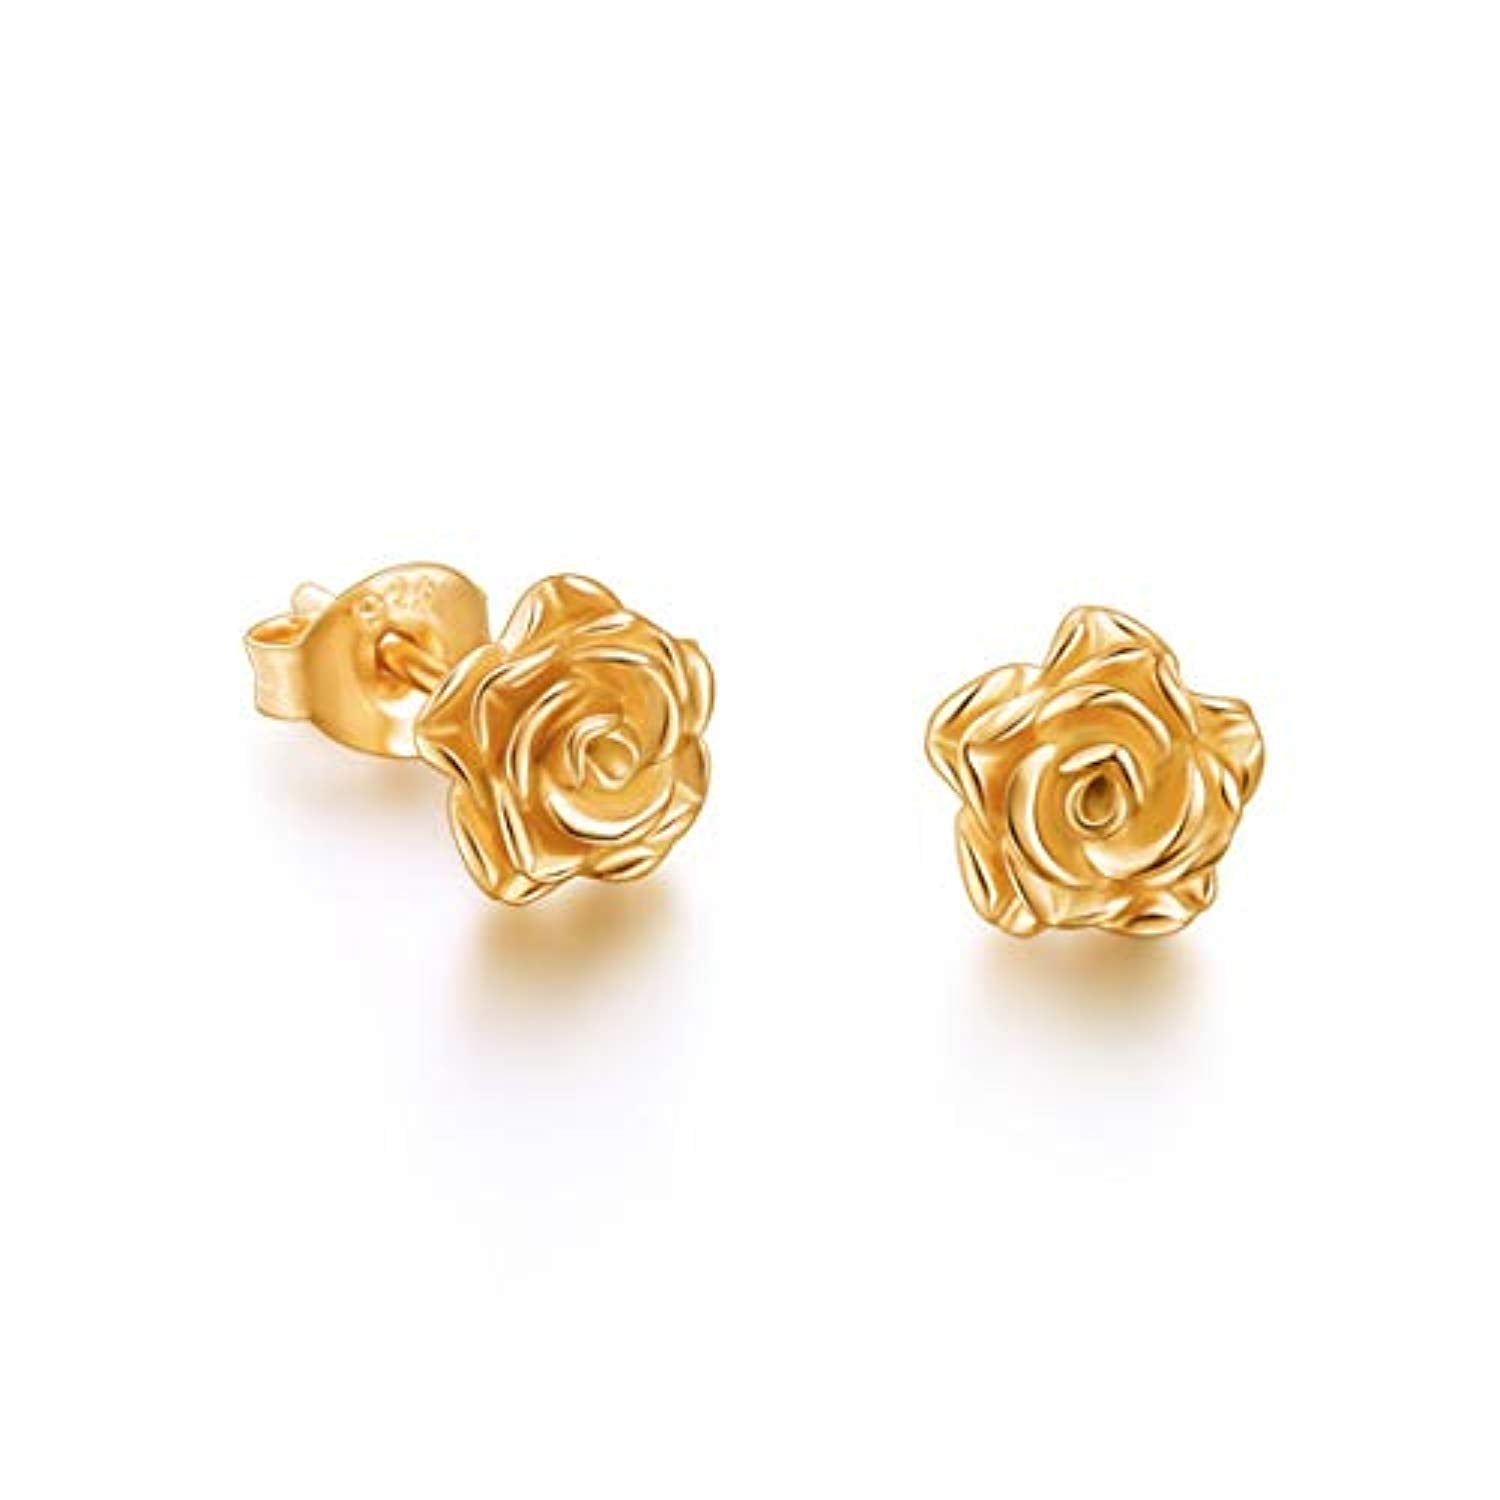 S925 Gold-plated Sterling Silver Rose Flower Earrings Jewelry for Women